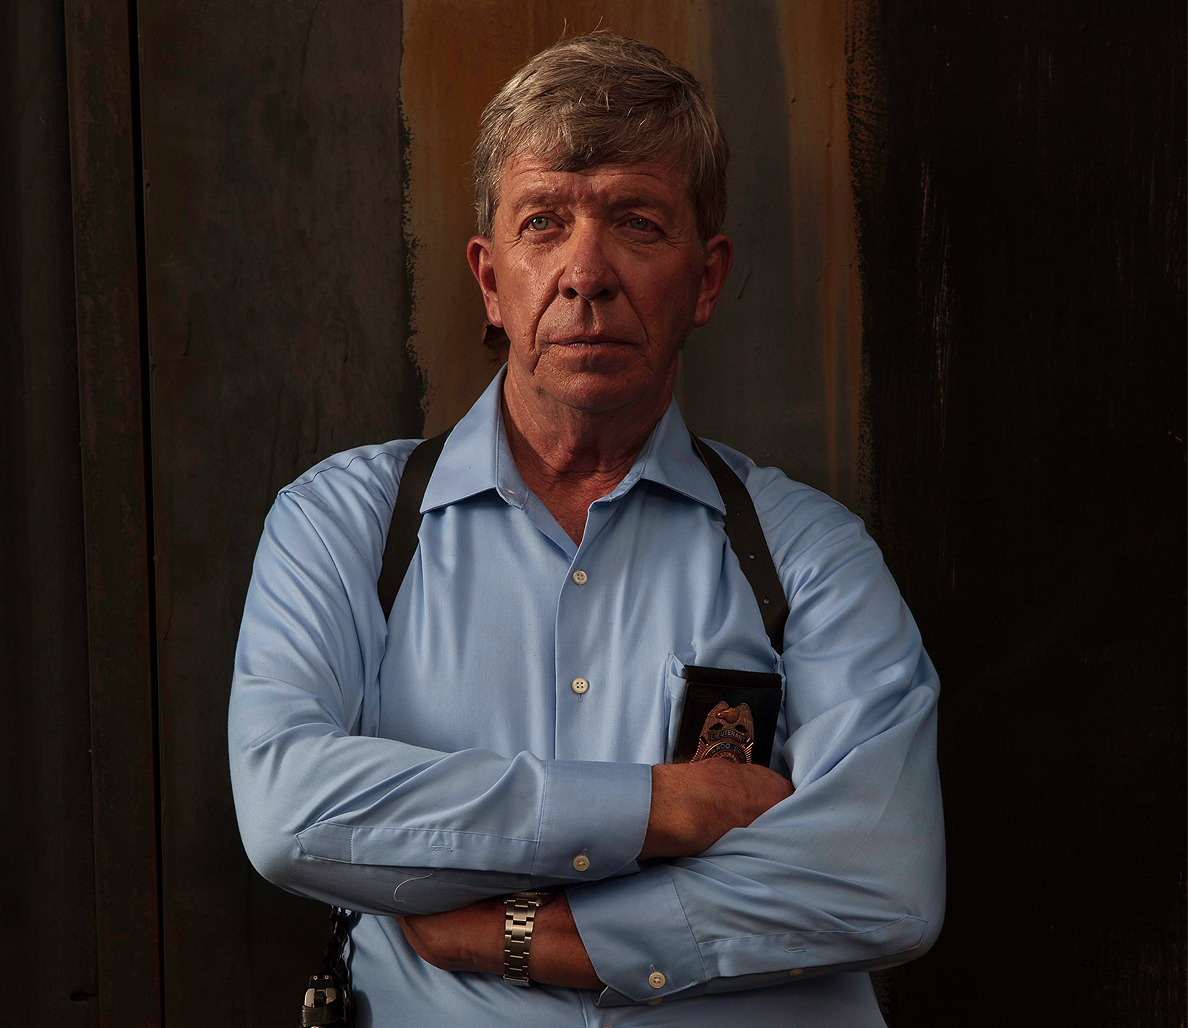 Exclusive Tv Homicide Hunter Lt Joe Kenda Shares Never Before Revealed Details On How He Hunted Captured And Put Away Nearly 400 Cold Blooded Killers Kenda said that out of all the killers he's encountered, it was the sociopath who's undoubtedly the most dangerous. tv homicide hunter lt joe kenda